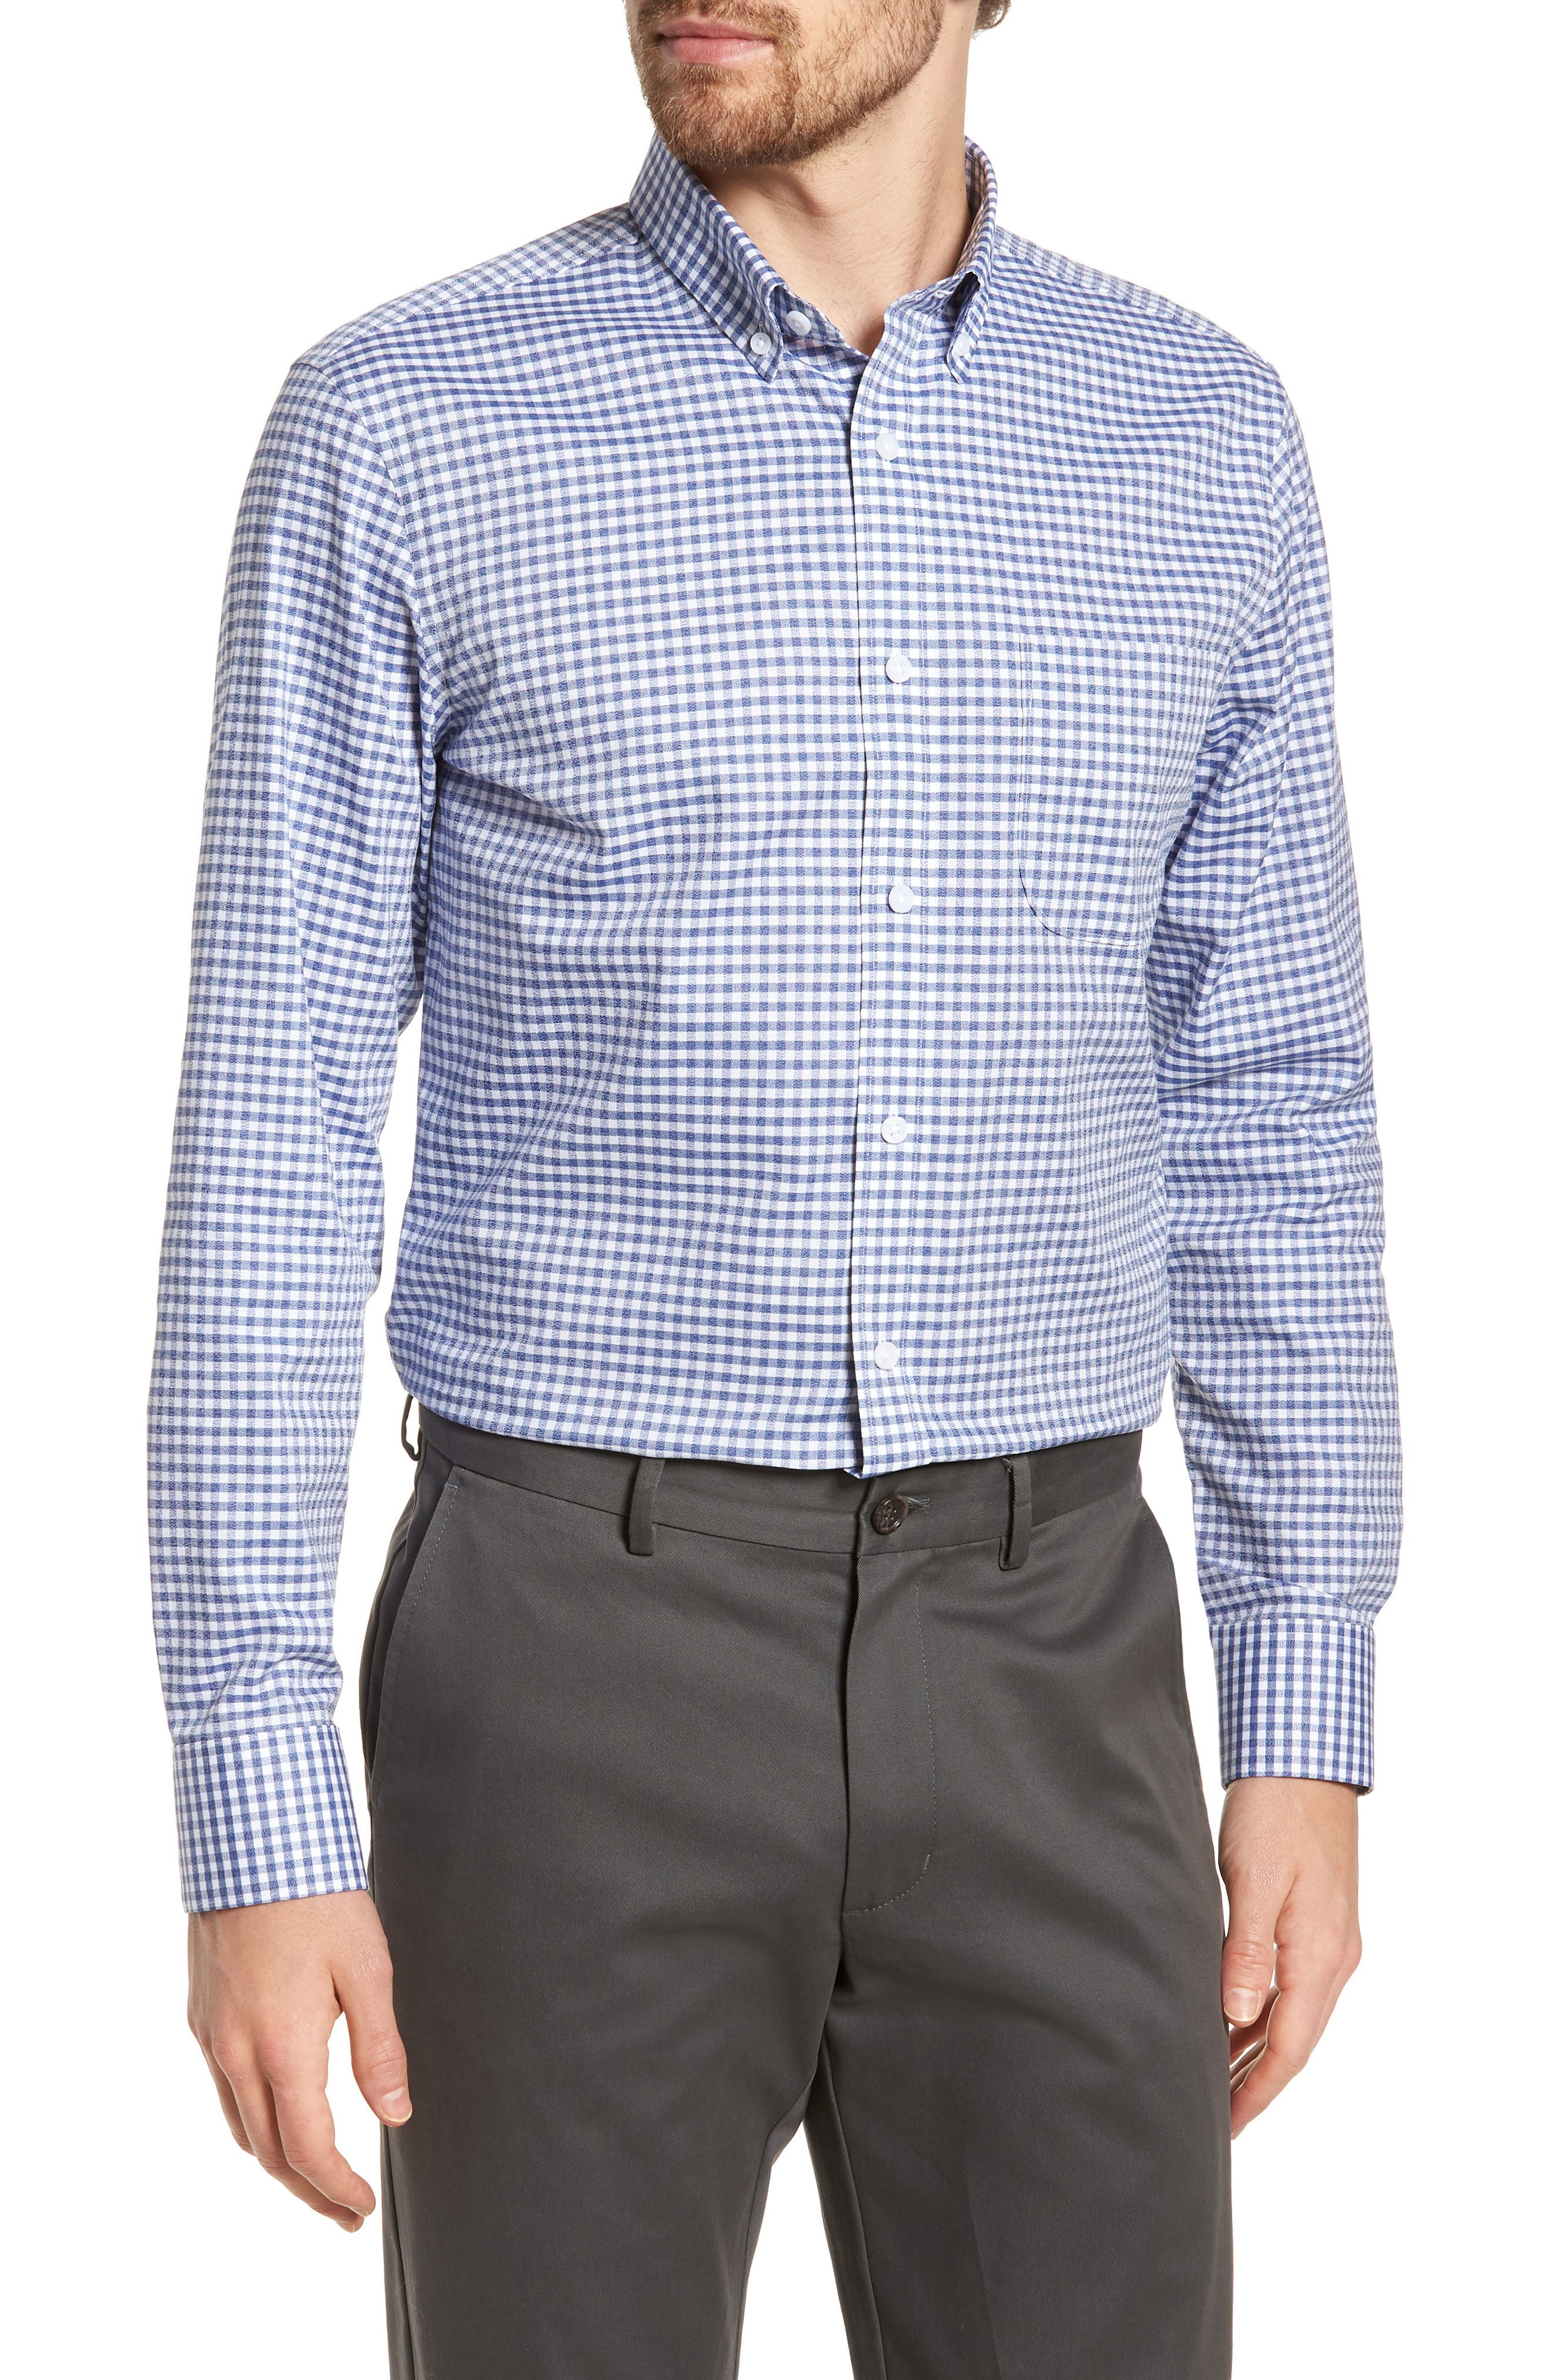 Trim Fit Check Sport Shirt,                         Main,                         color, Navy White Jacquard Gingham